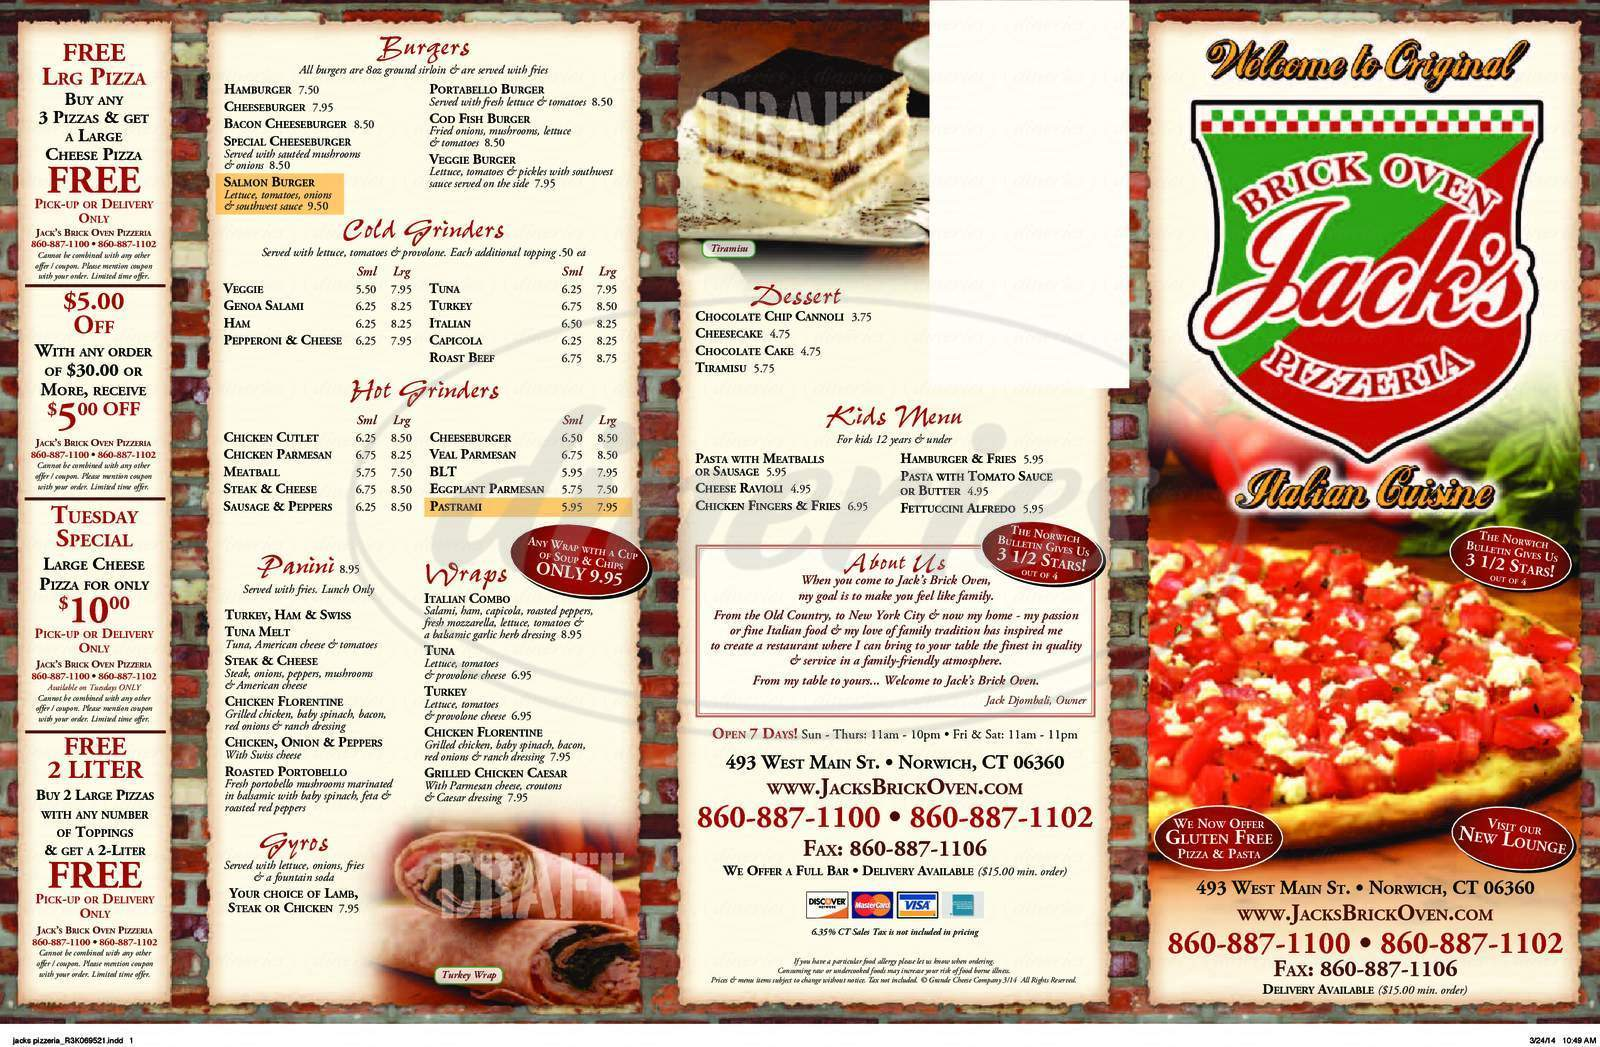 menu for Jack's Brick Oven Pizza